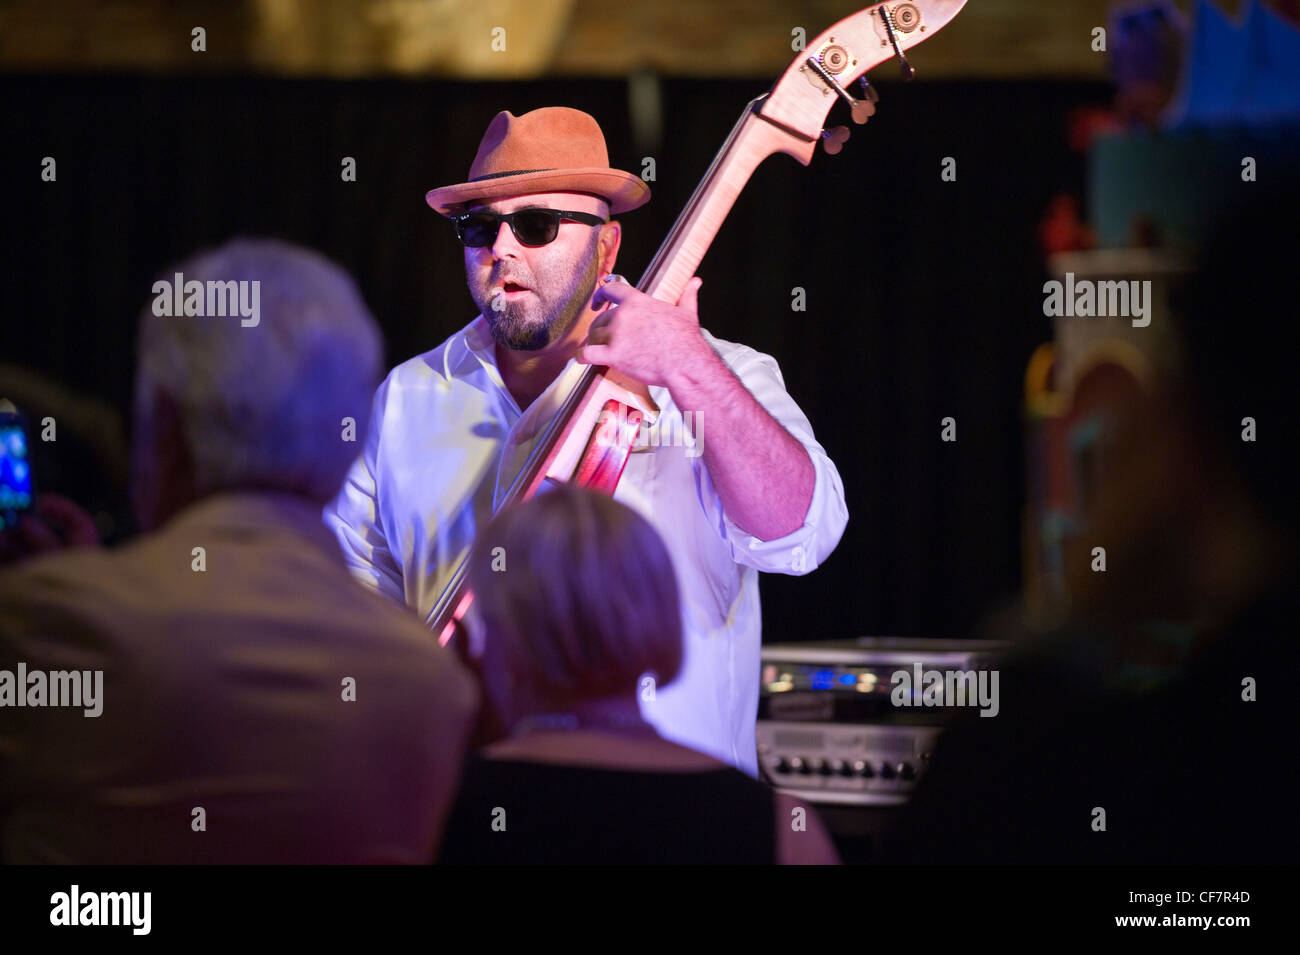 Ace of Cakes Duff Goldman playing string bass performance at AVAM in Baltimore, MD - Stock Image